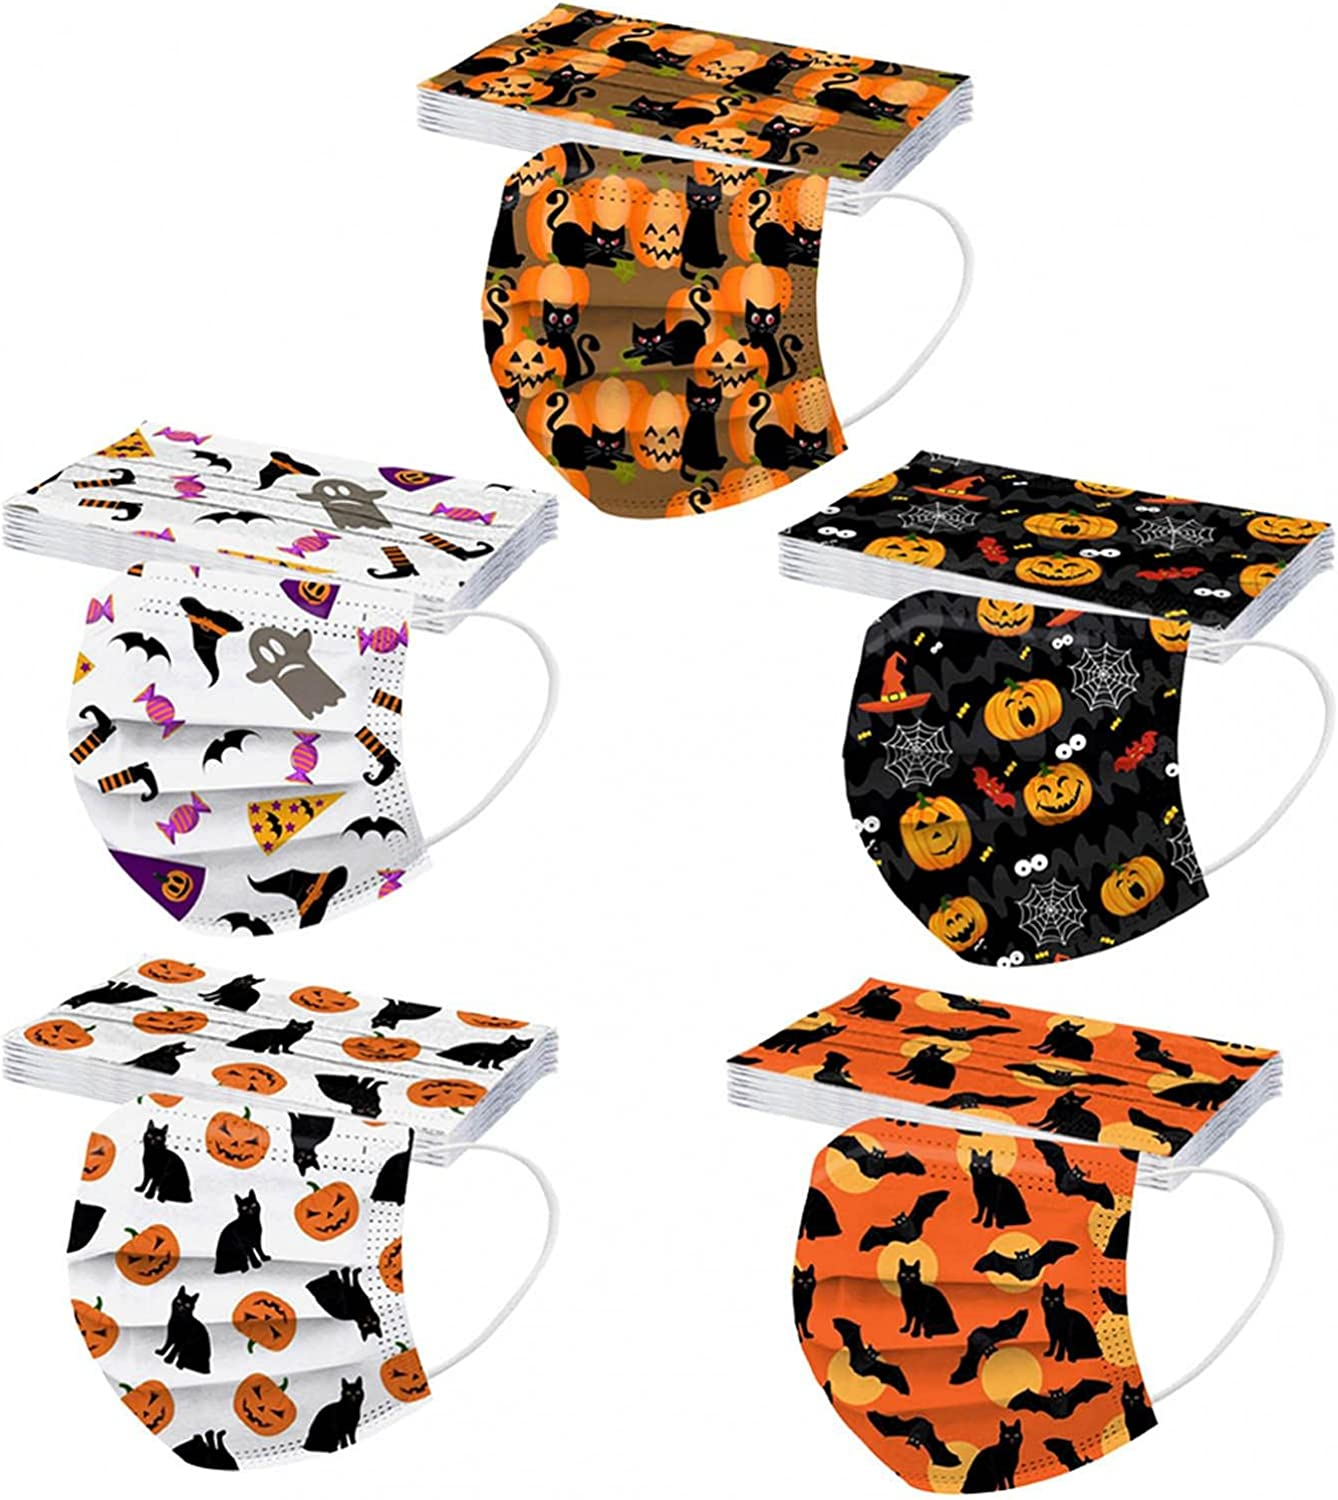 Brand new 50PC Face_Masks for Kids Max 67% OFF Disposable_F Halloween Ghost Patterned